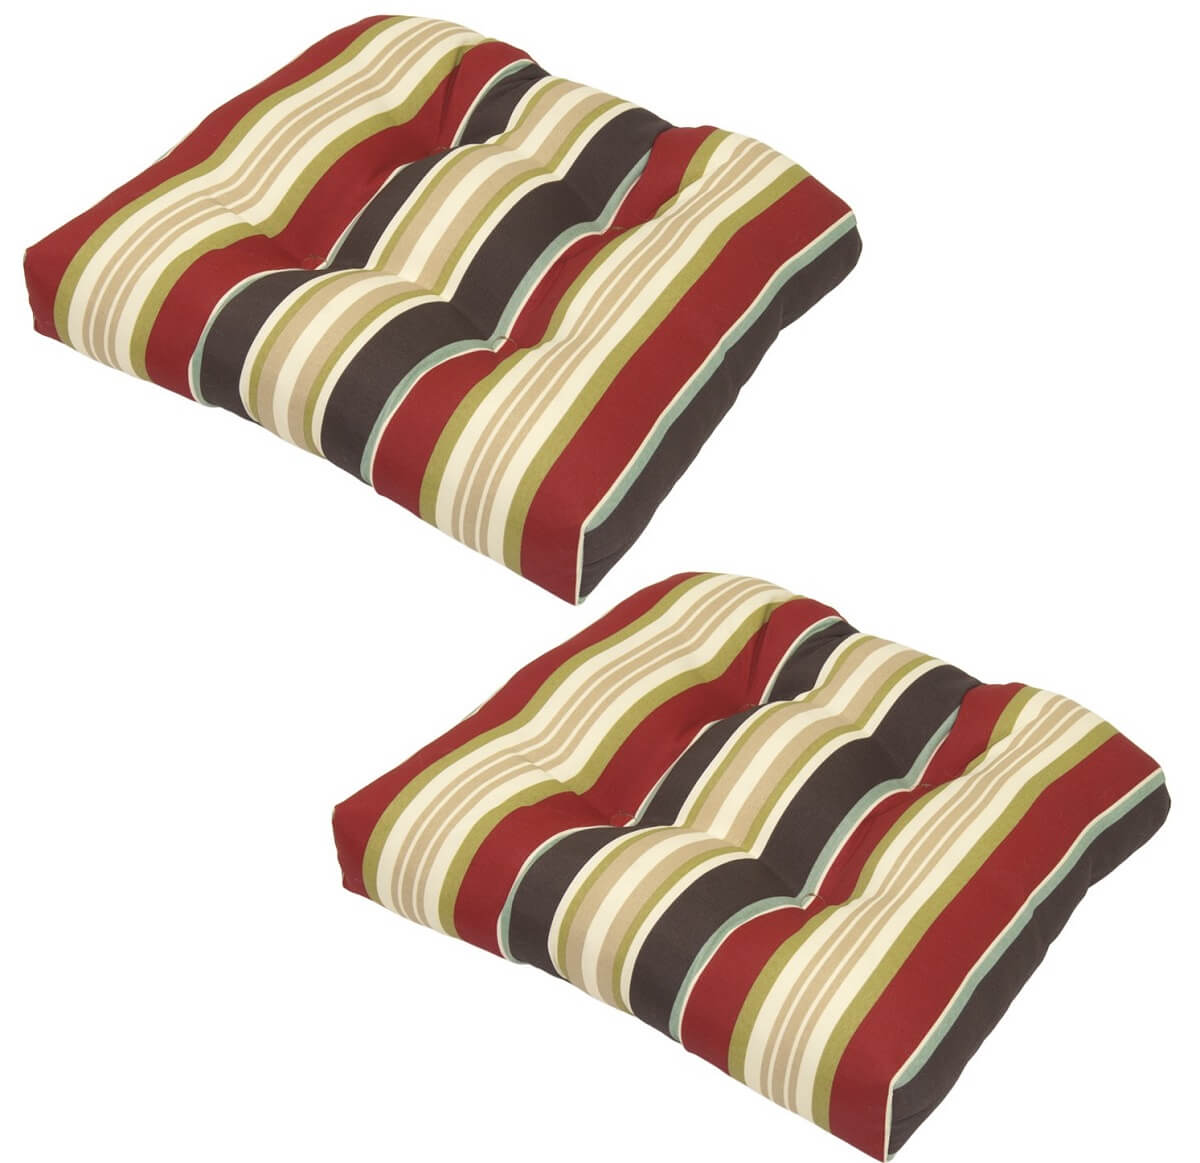 Striped Outdoor Dining Cushions